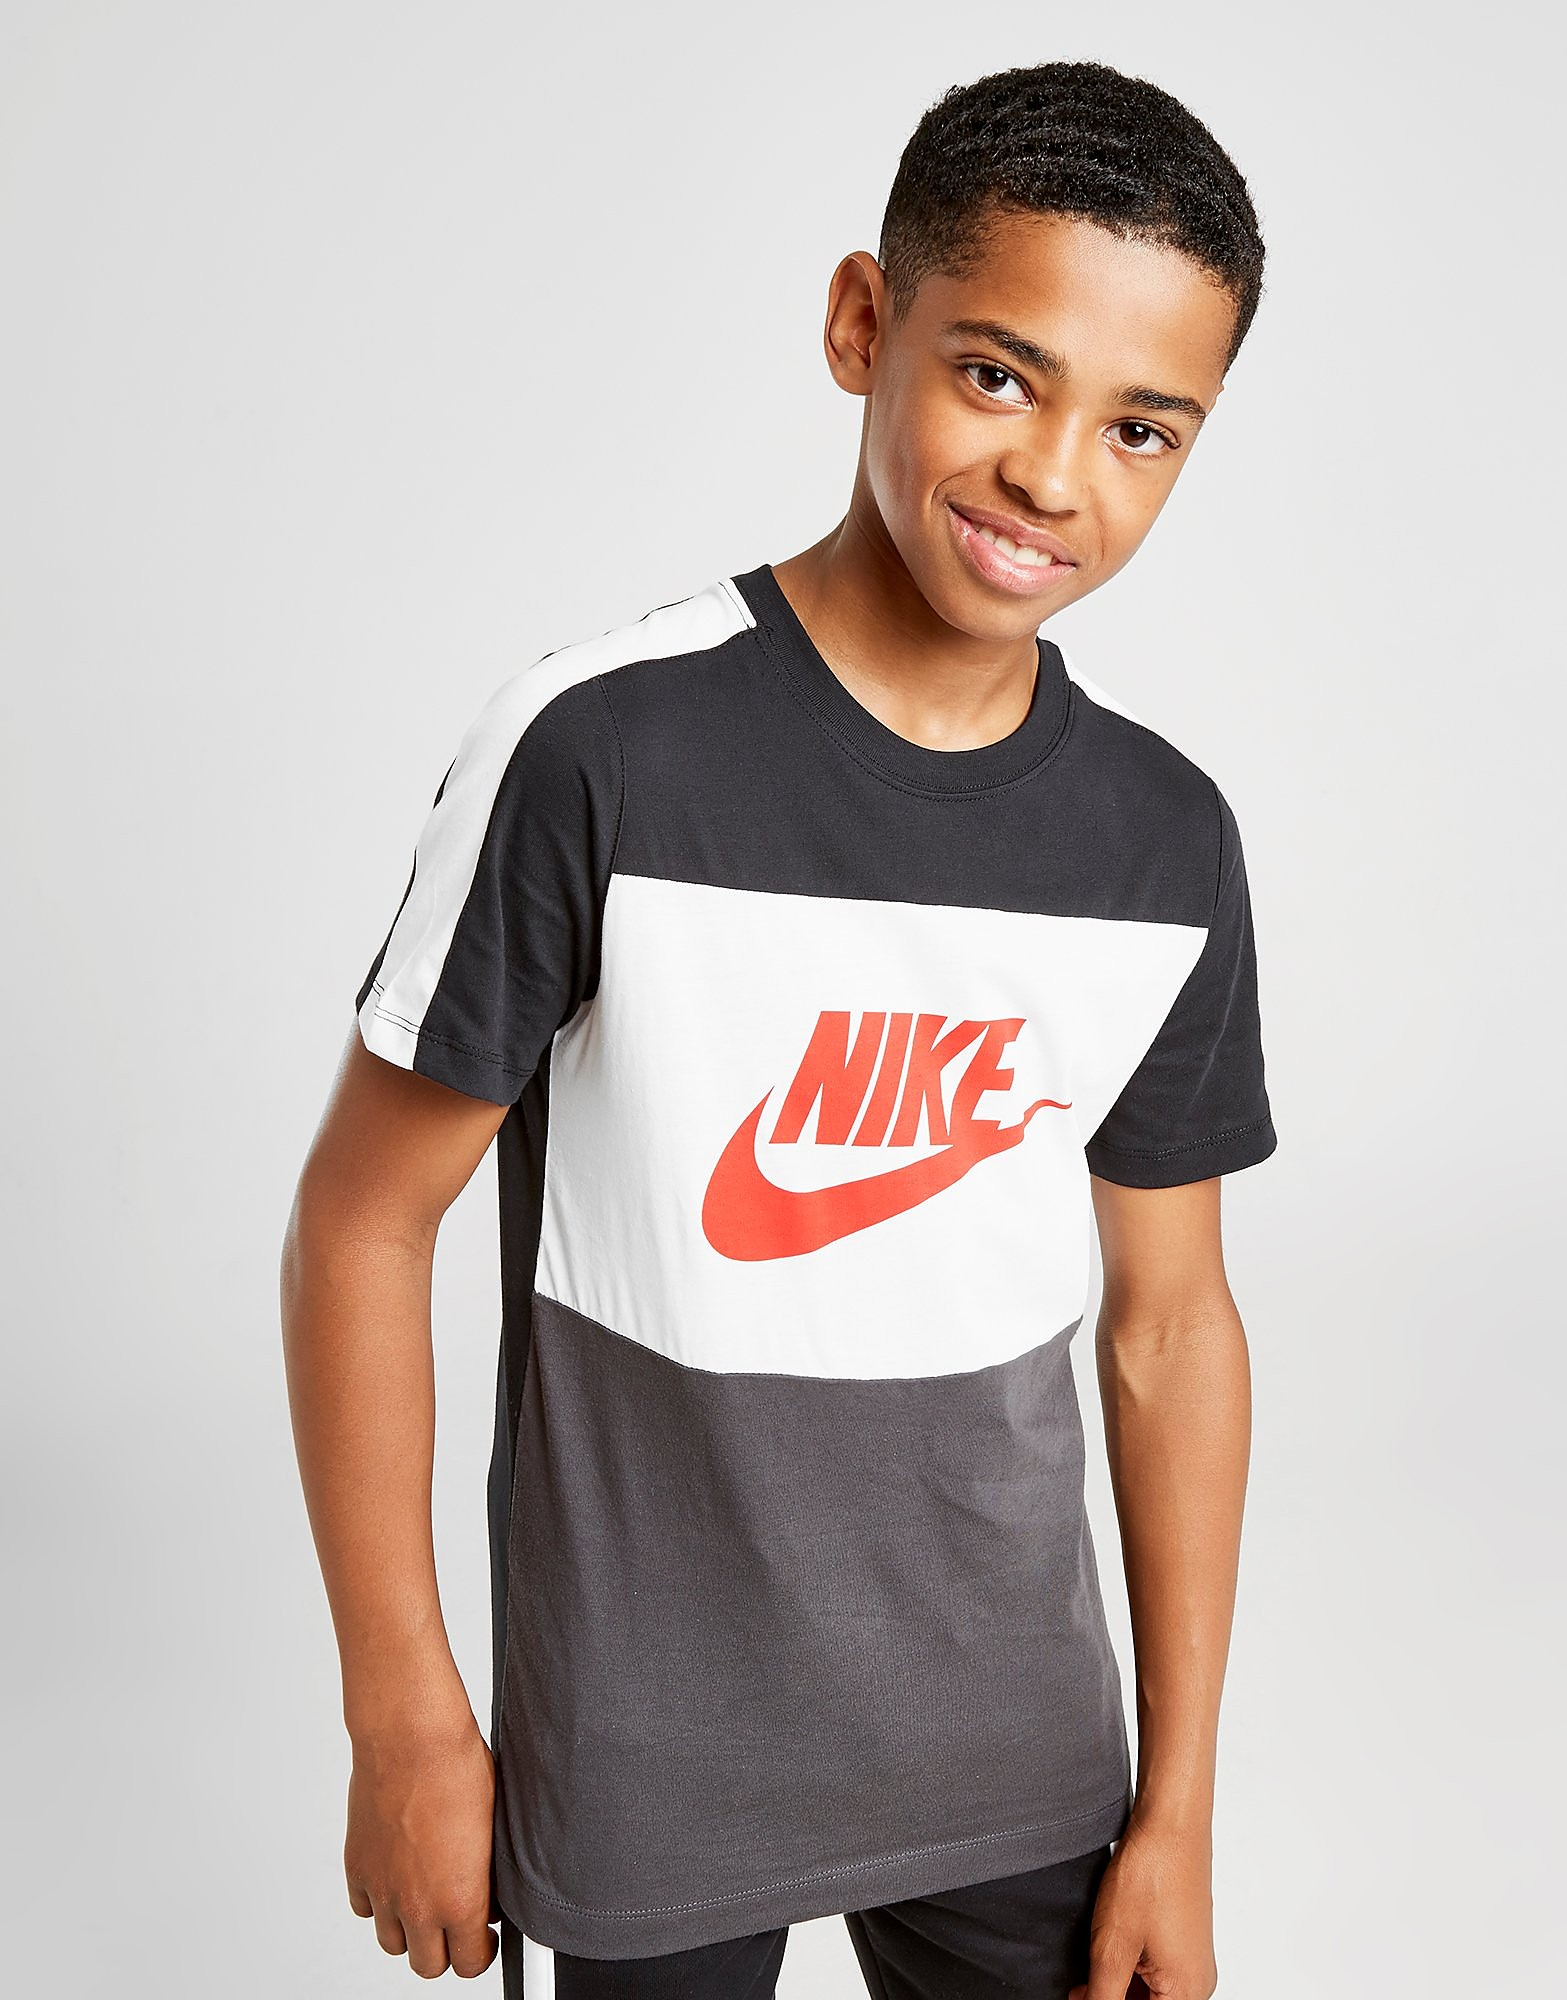 Nike Hybrid T-Shirt Junior Zwart Kind